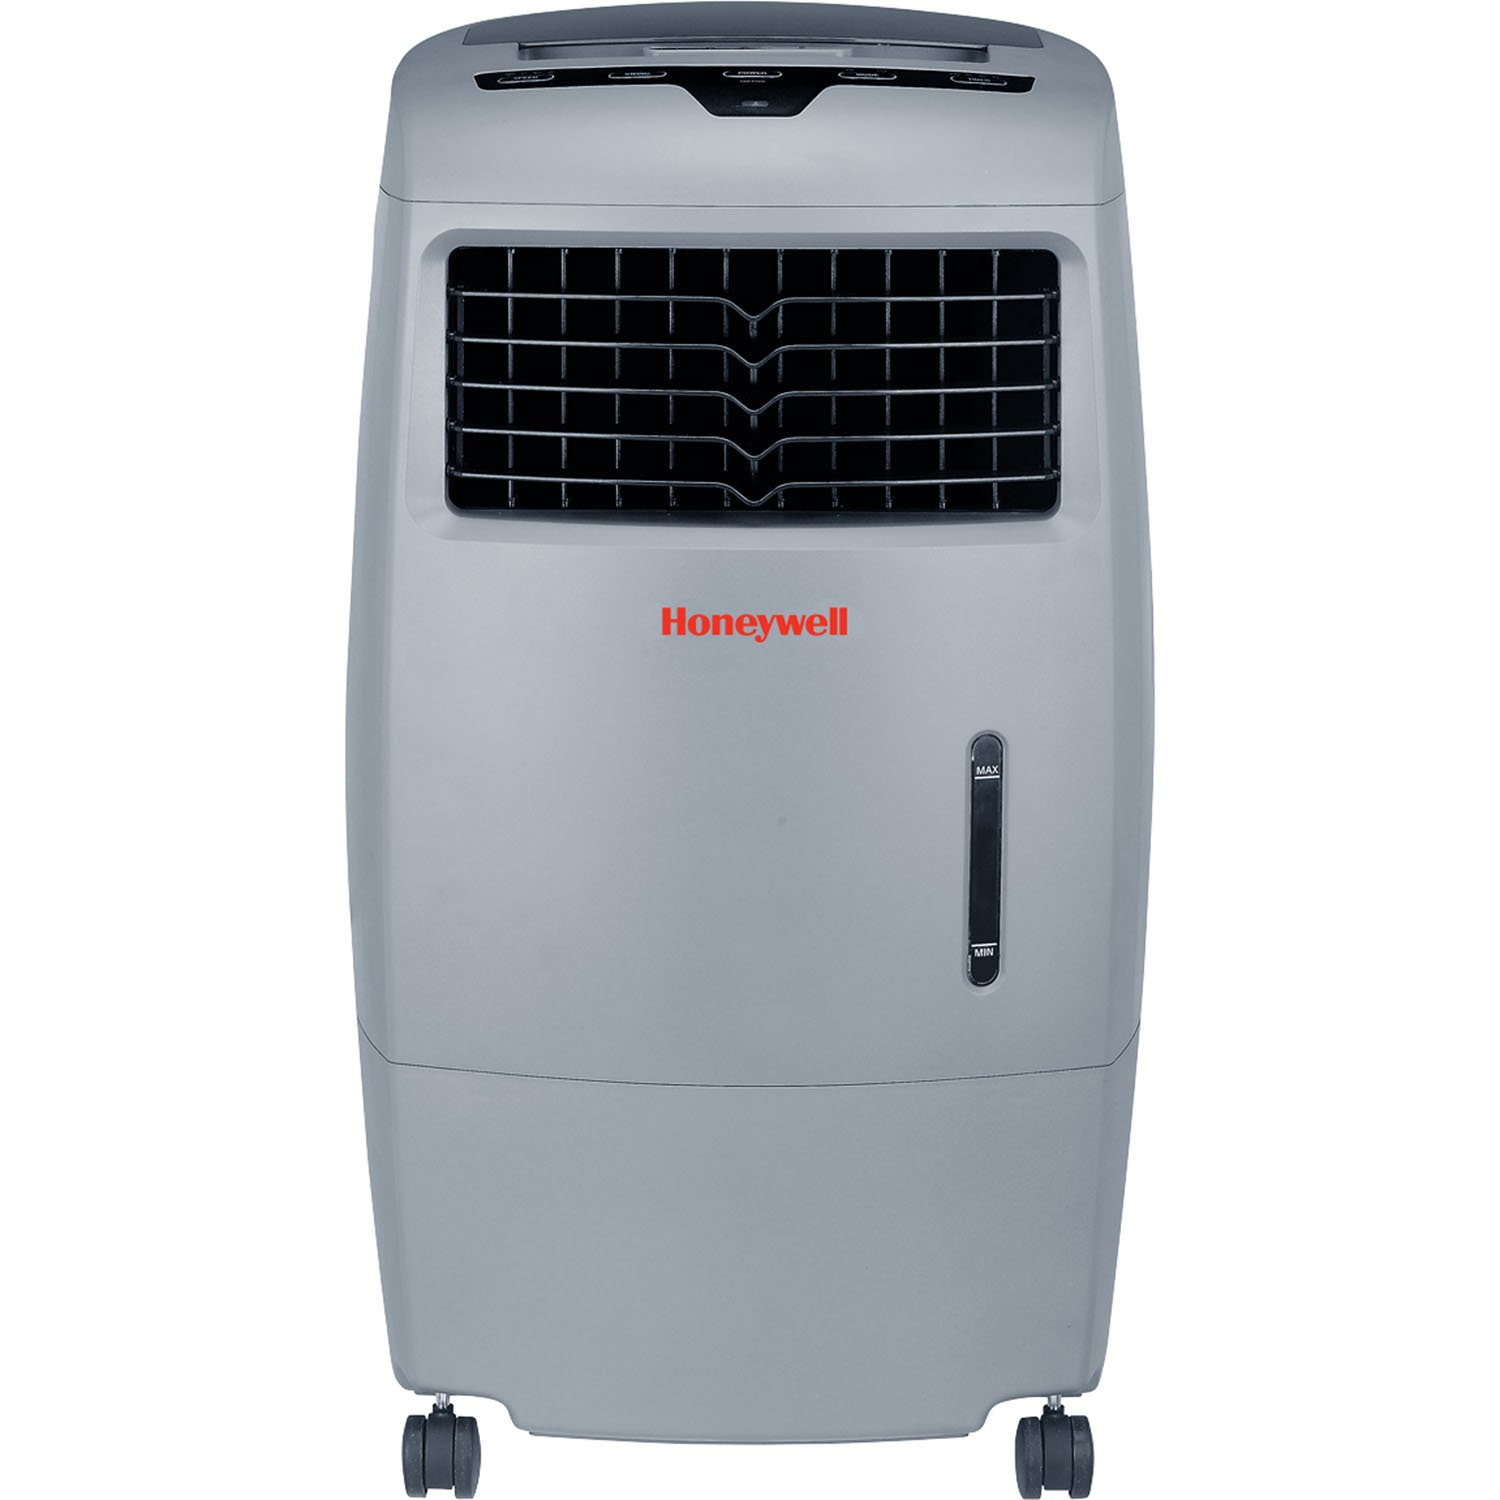 Air Conditioner Portable Quietest and Hoseless Rated Reviews 2015 #B0261B